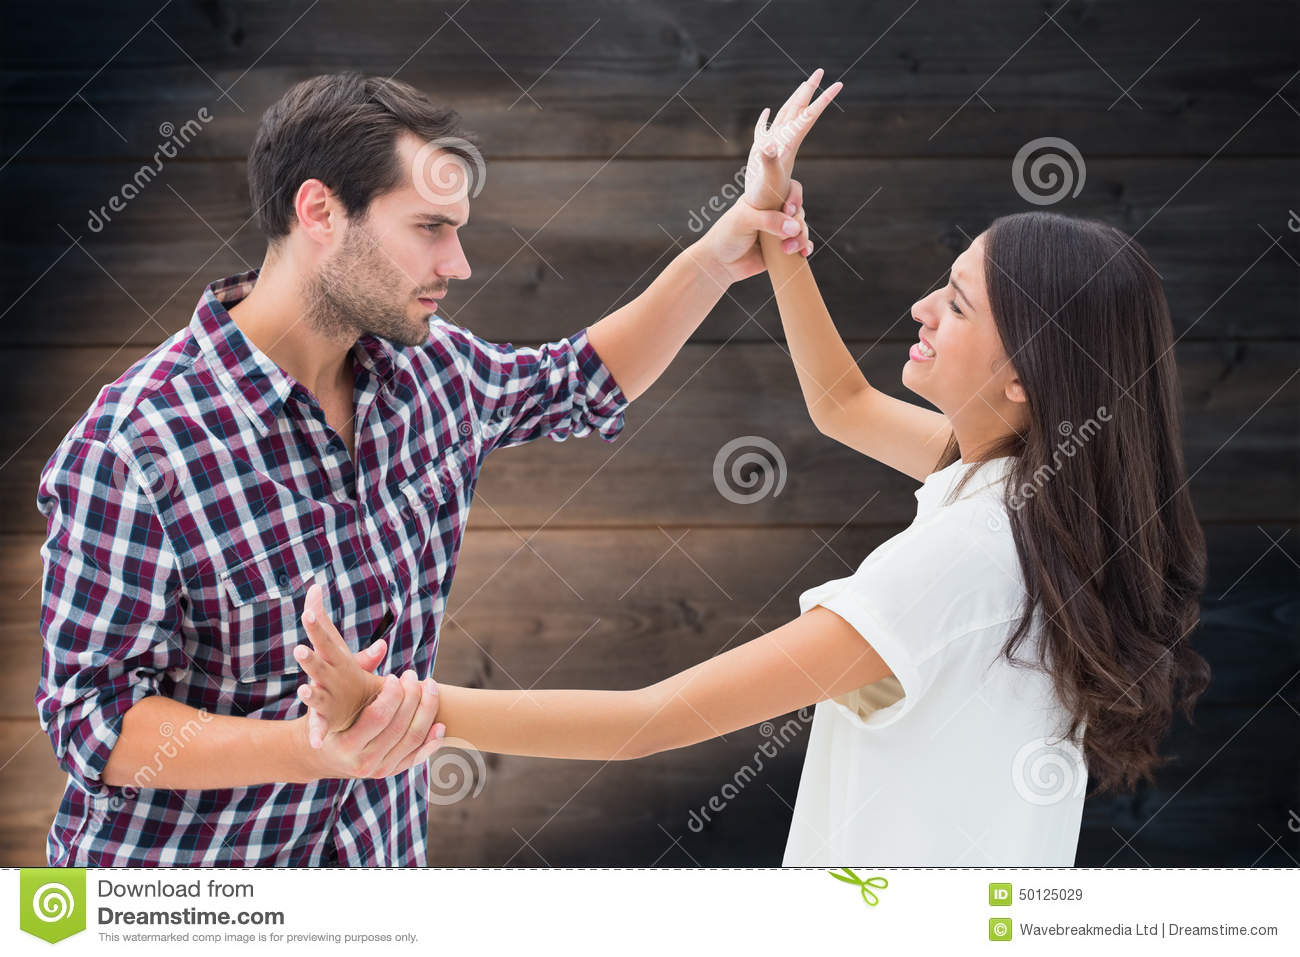 Composite image of fearful brunette being overpowered by boyfriend